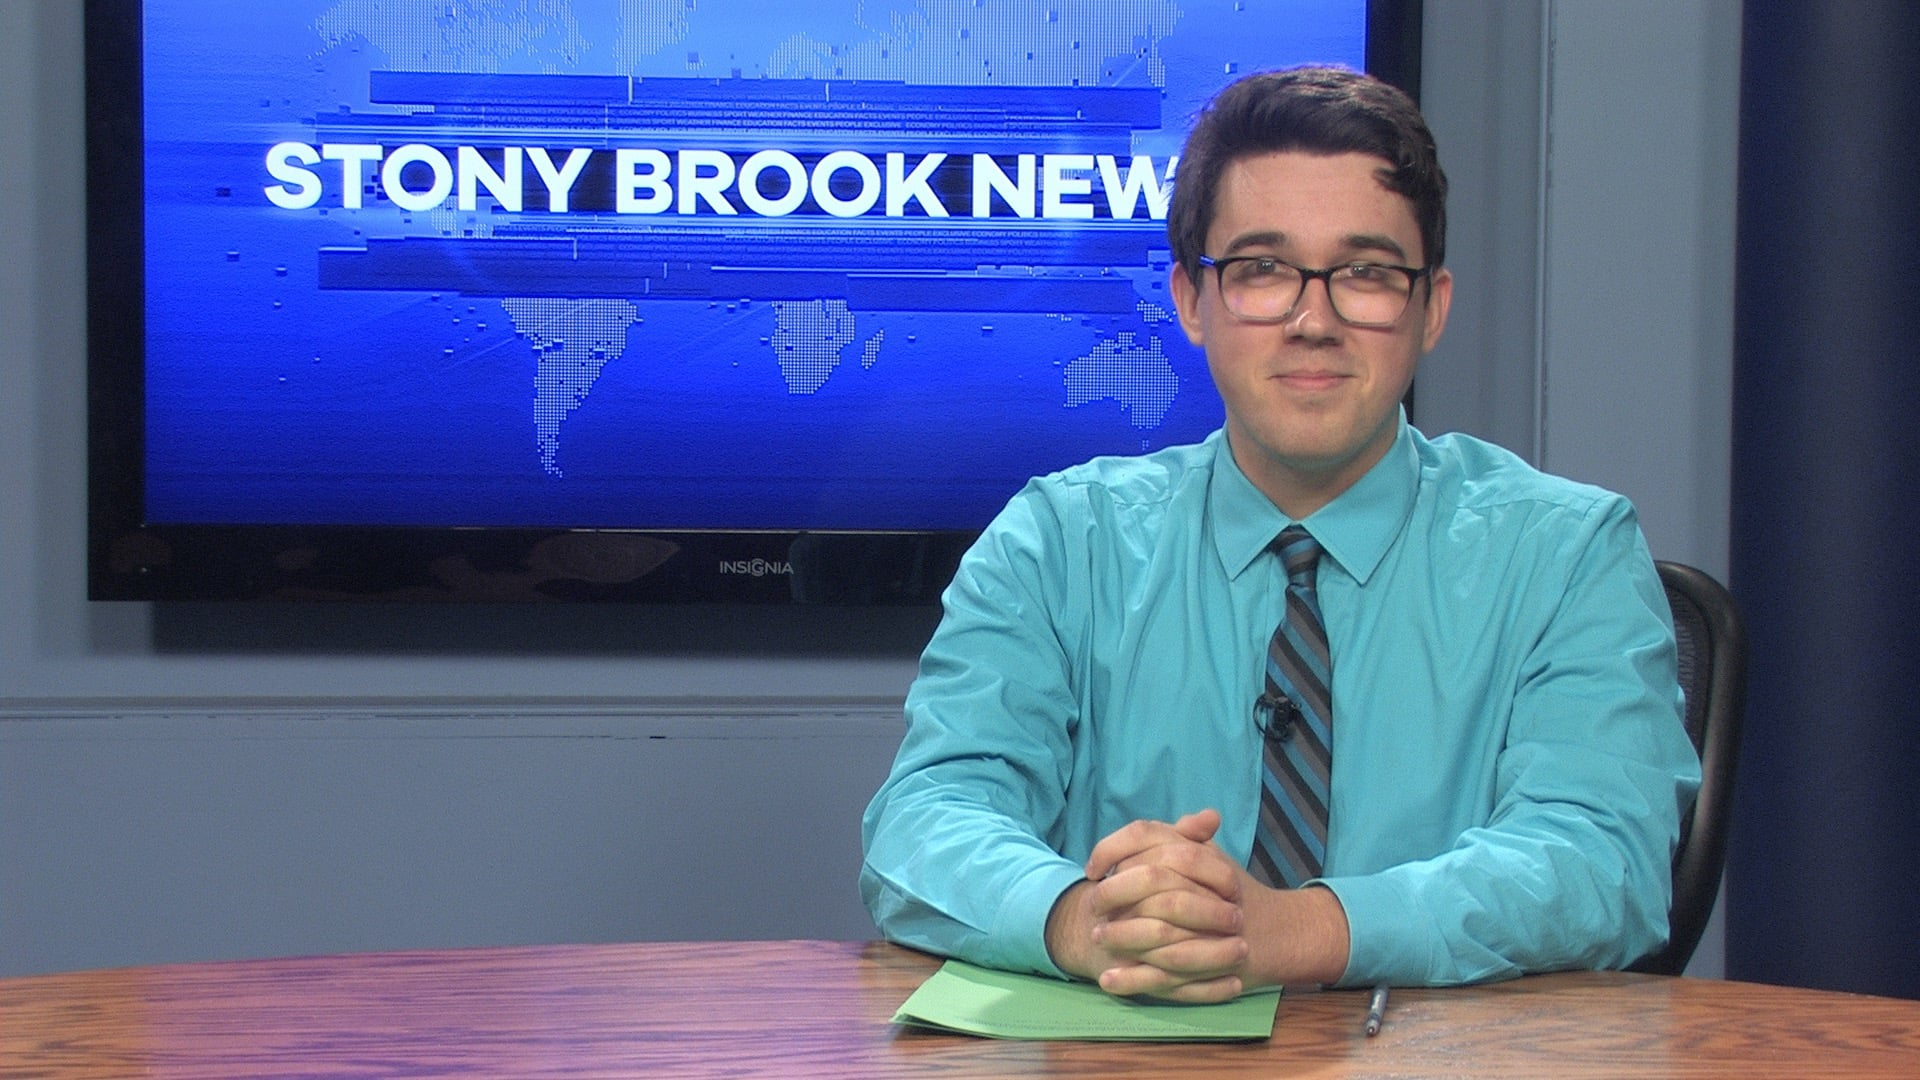 Stony Brook Newsbreak - November 30, 2017